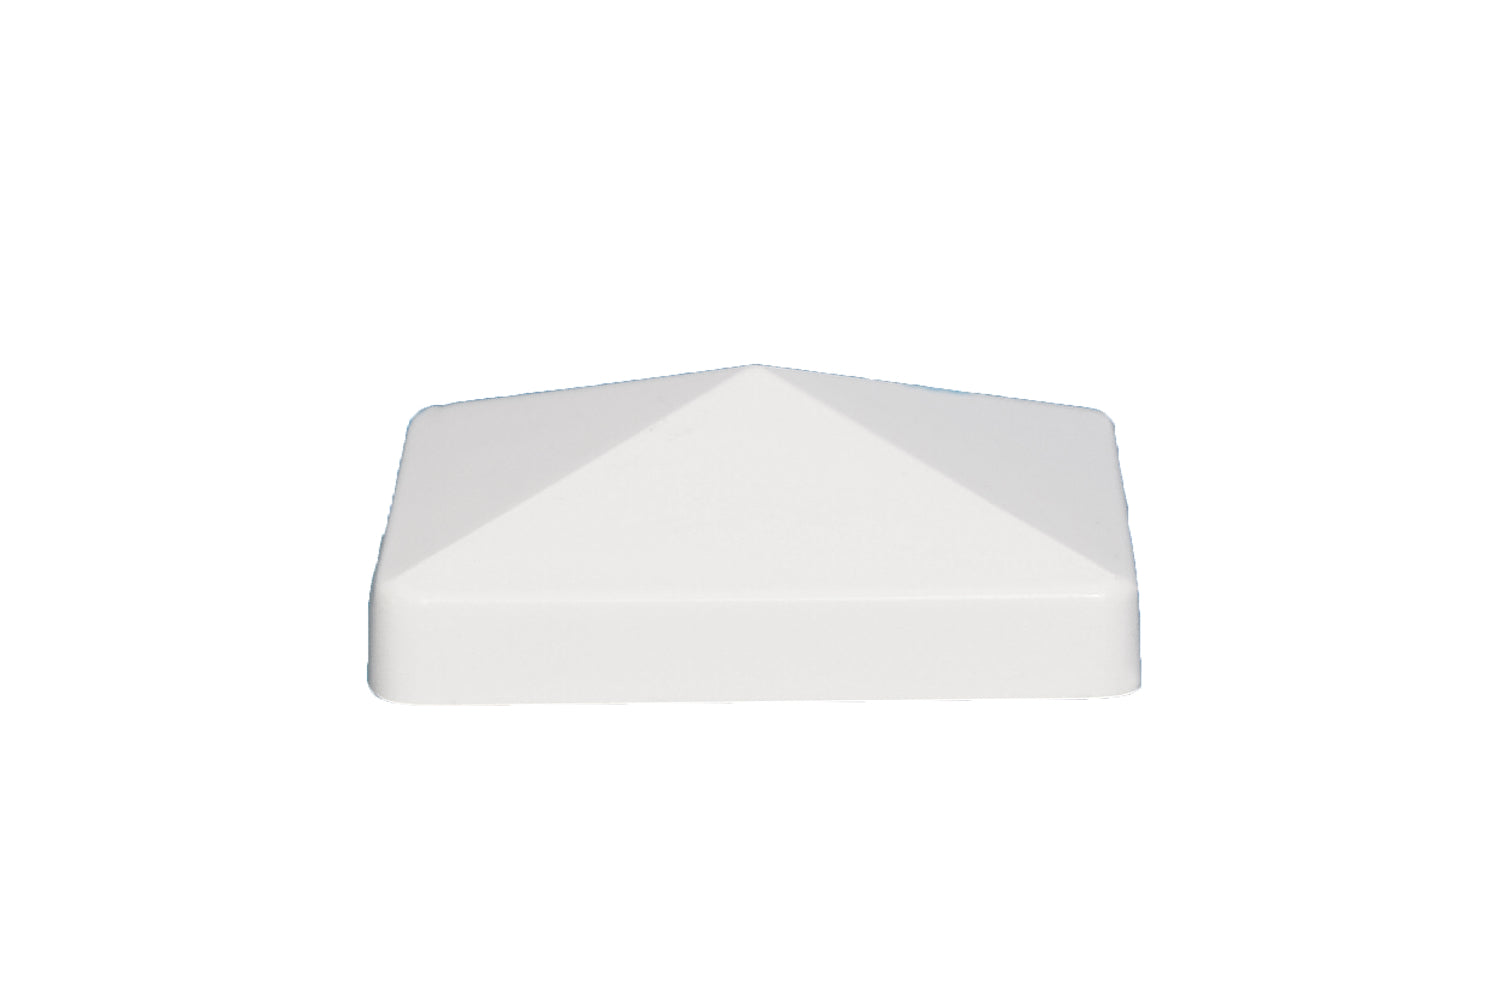 PYRAMID PVC POST CAP